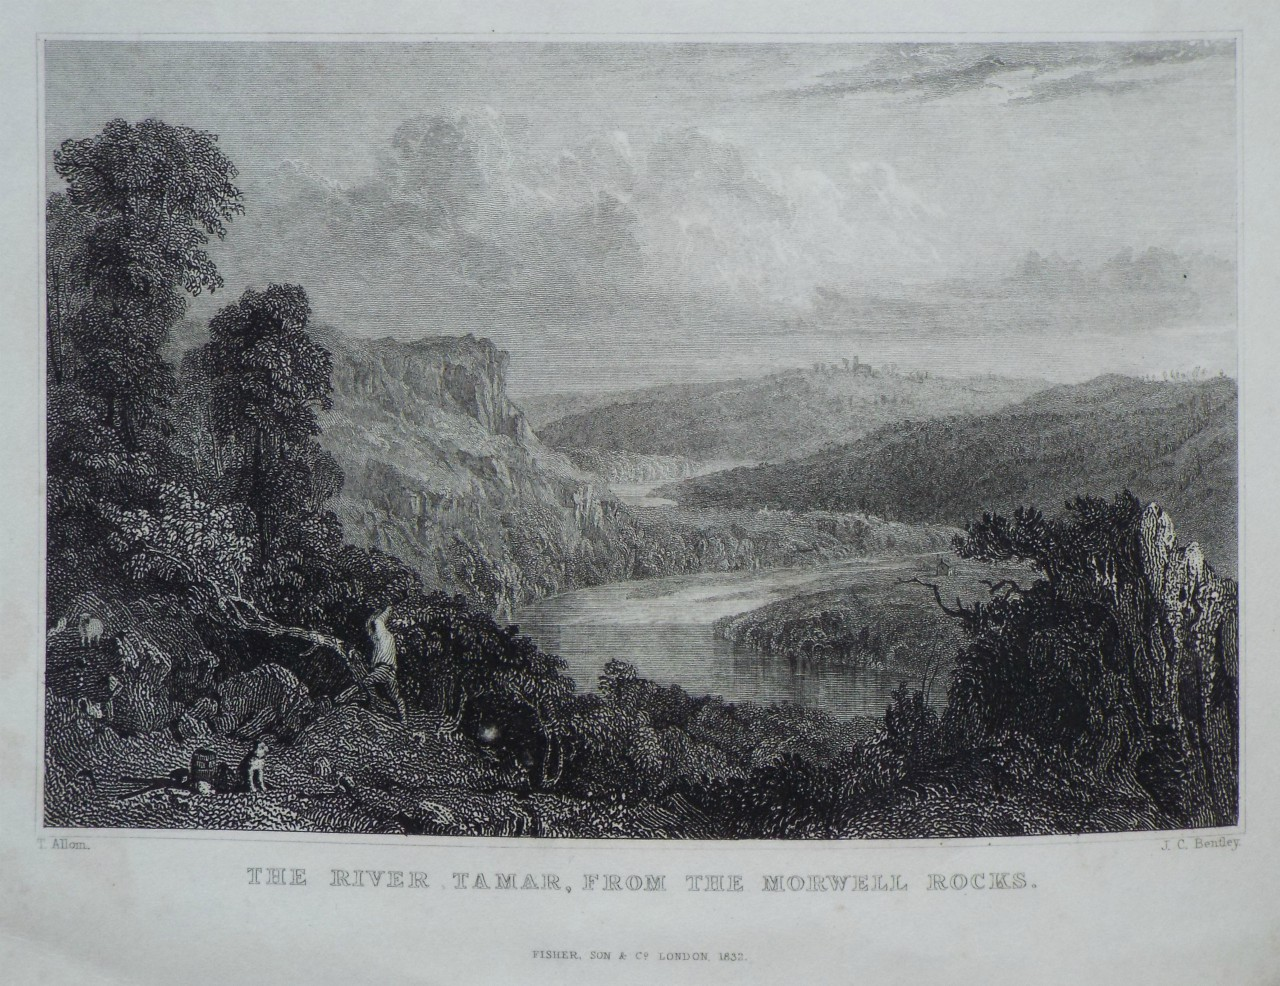 Print - The River Tamar, from the Morwell Rocks. - Bentley